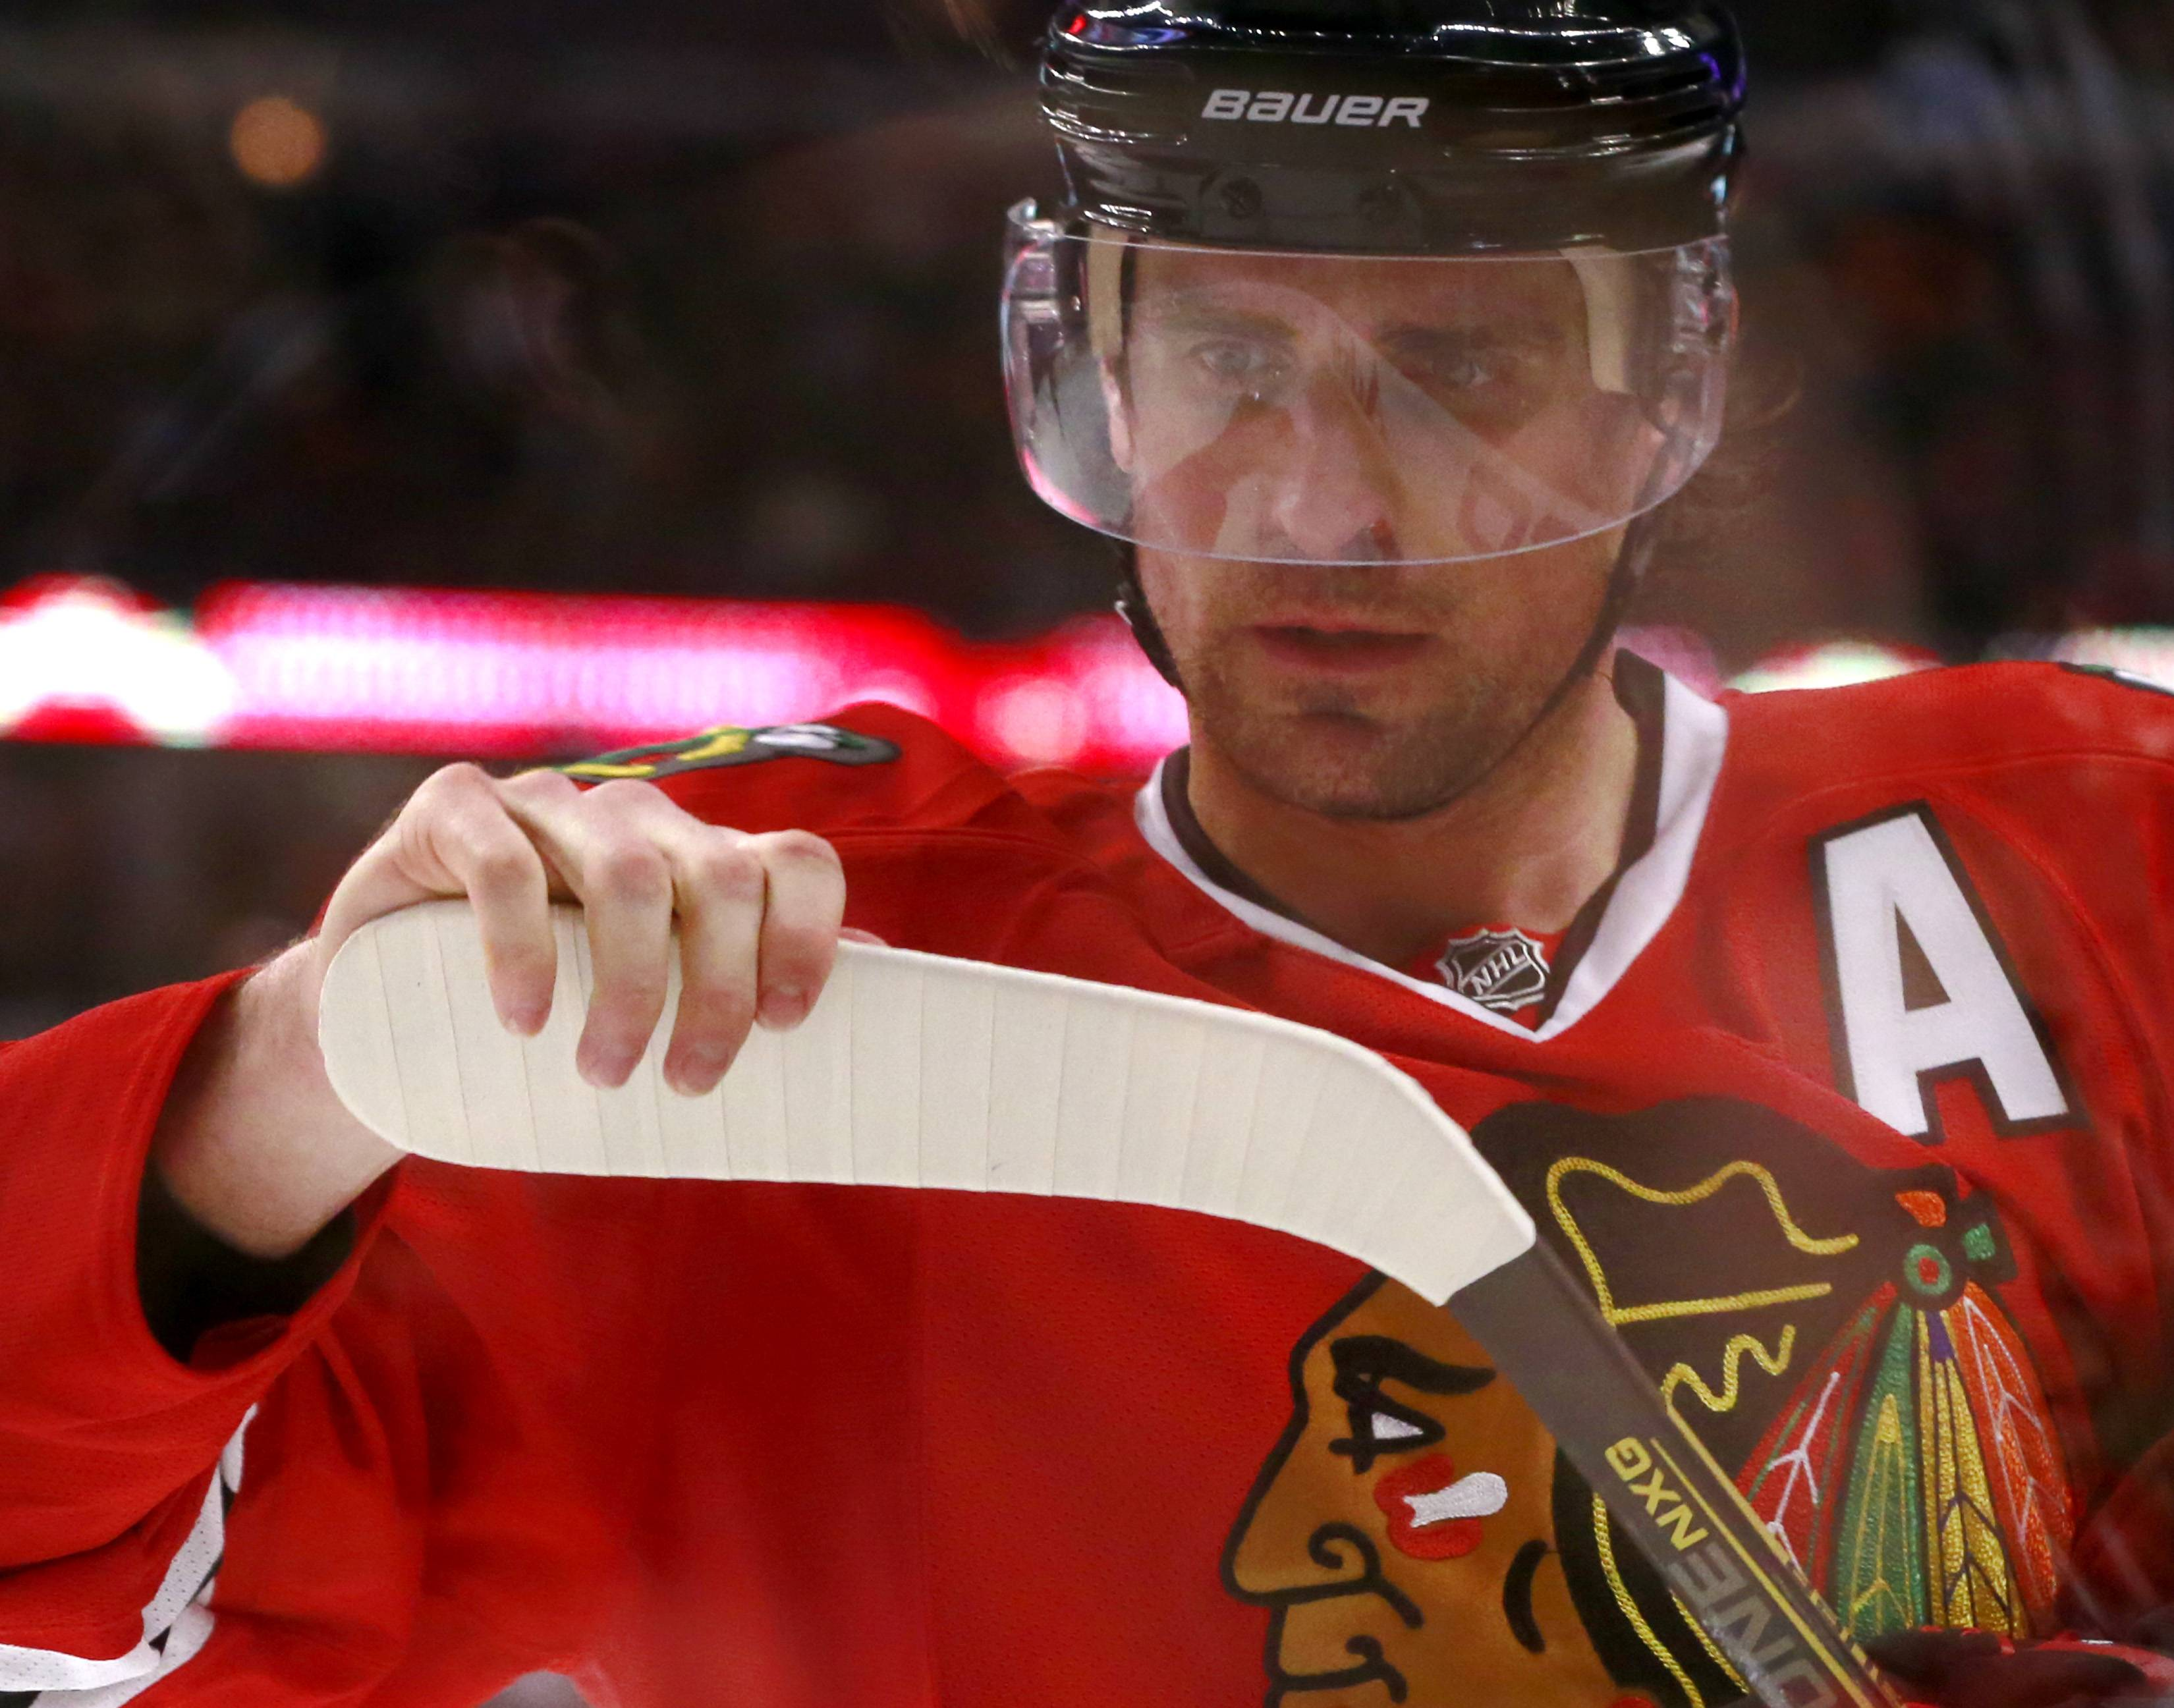 Blackhawks wing Patrick Sharp checks the blade of his stick during a break in play during the first round.